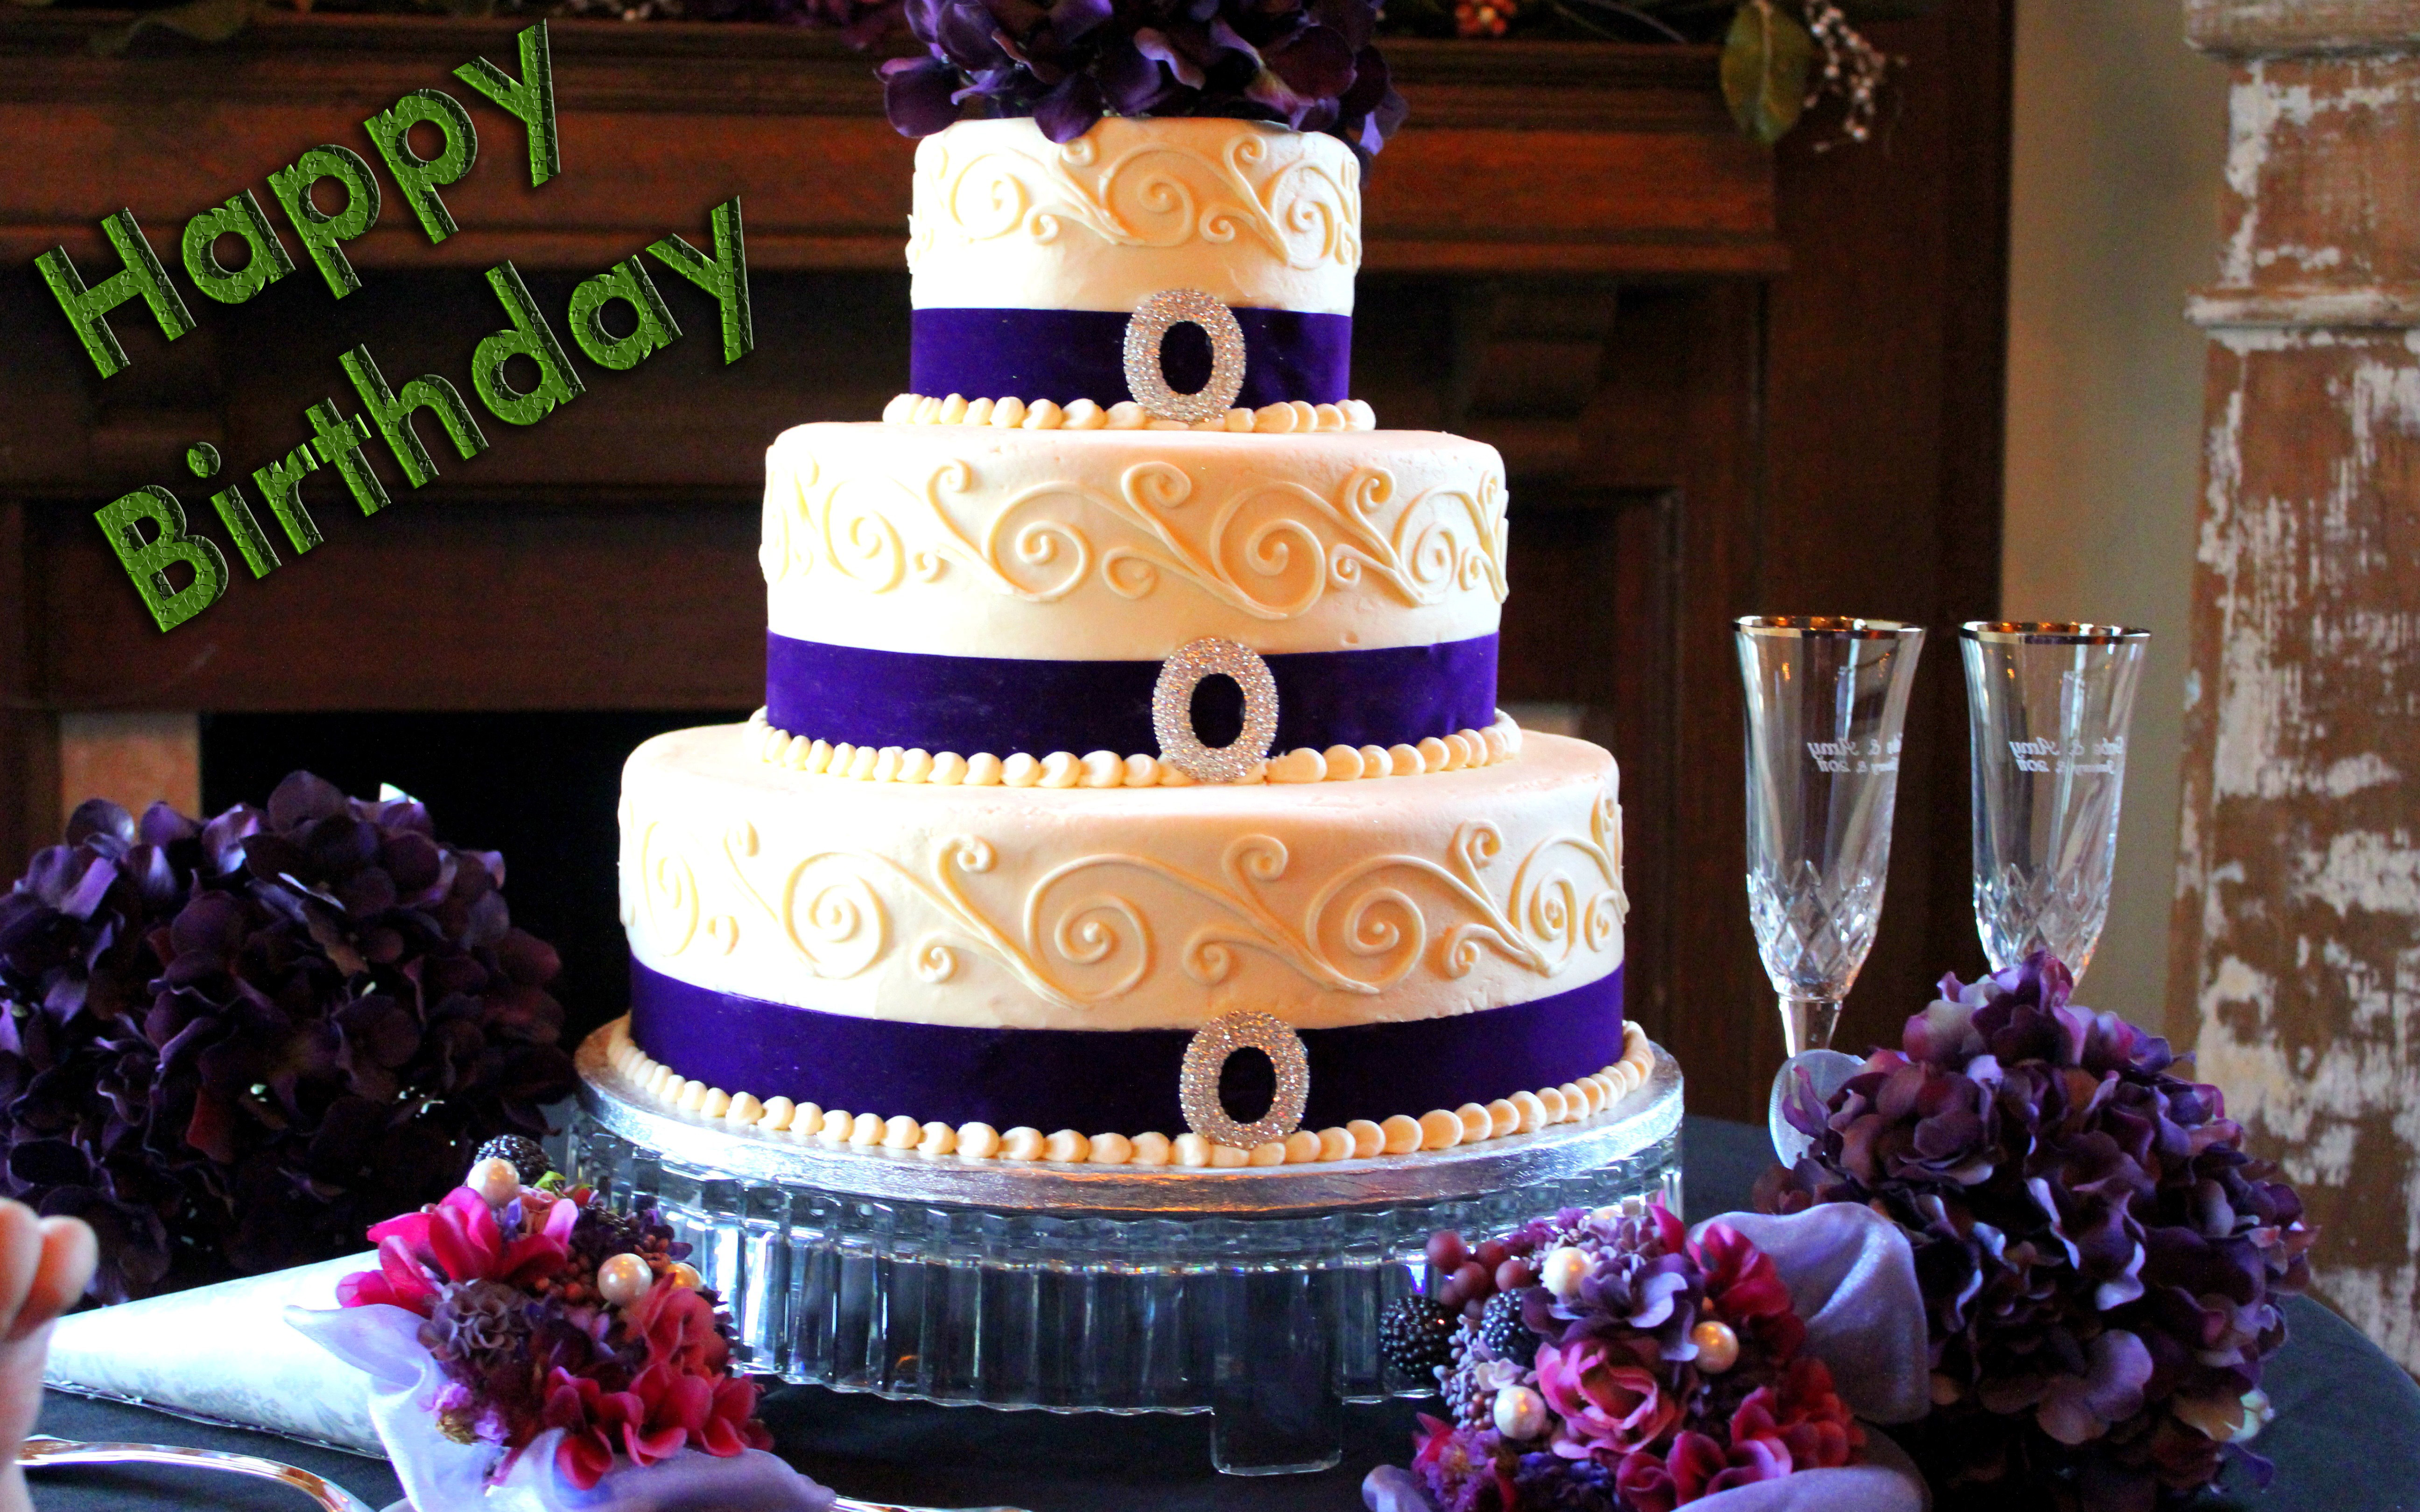 Big Cake Happy Birthday HD Wallpaper Wish